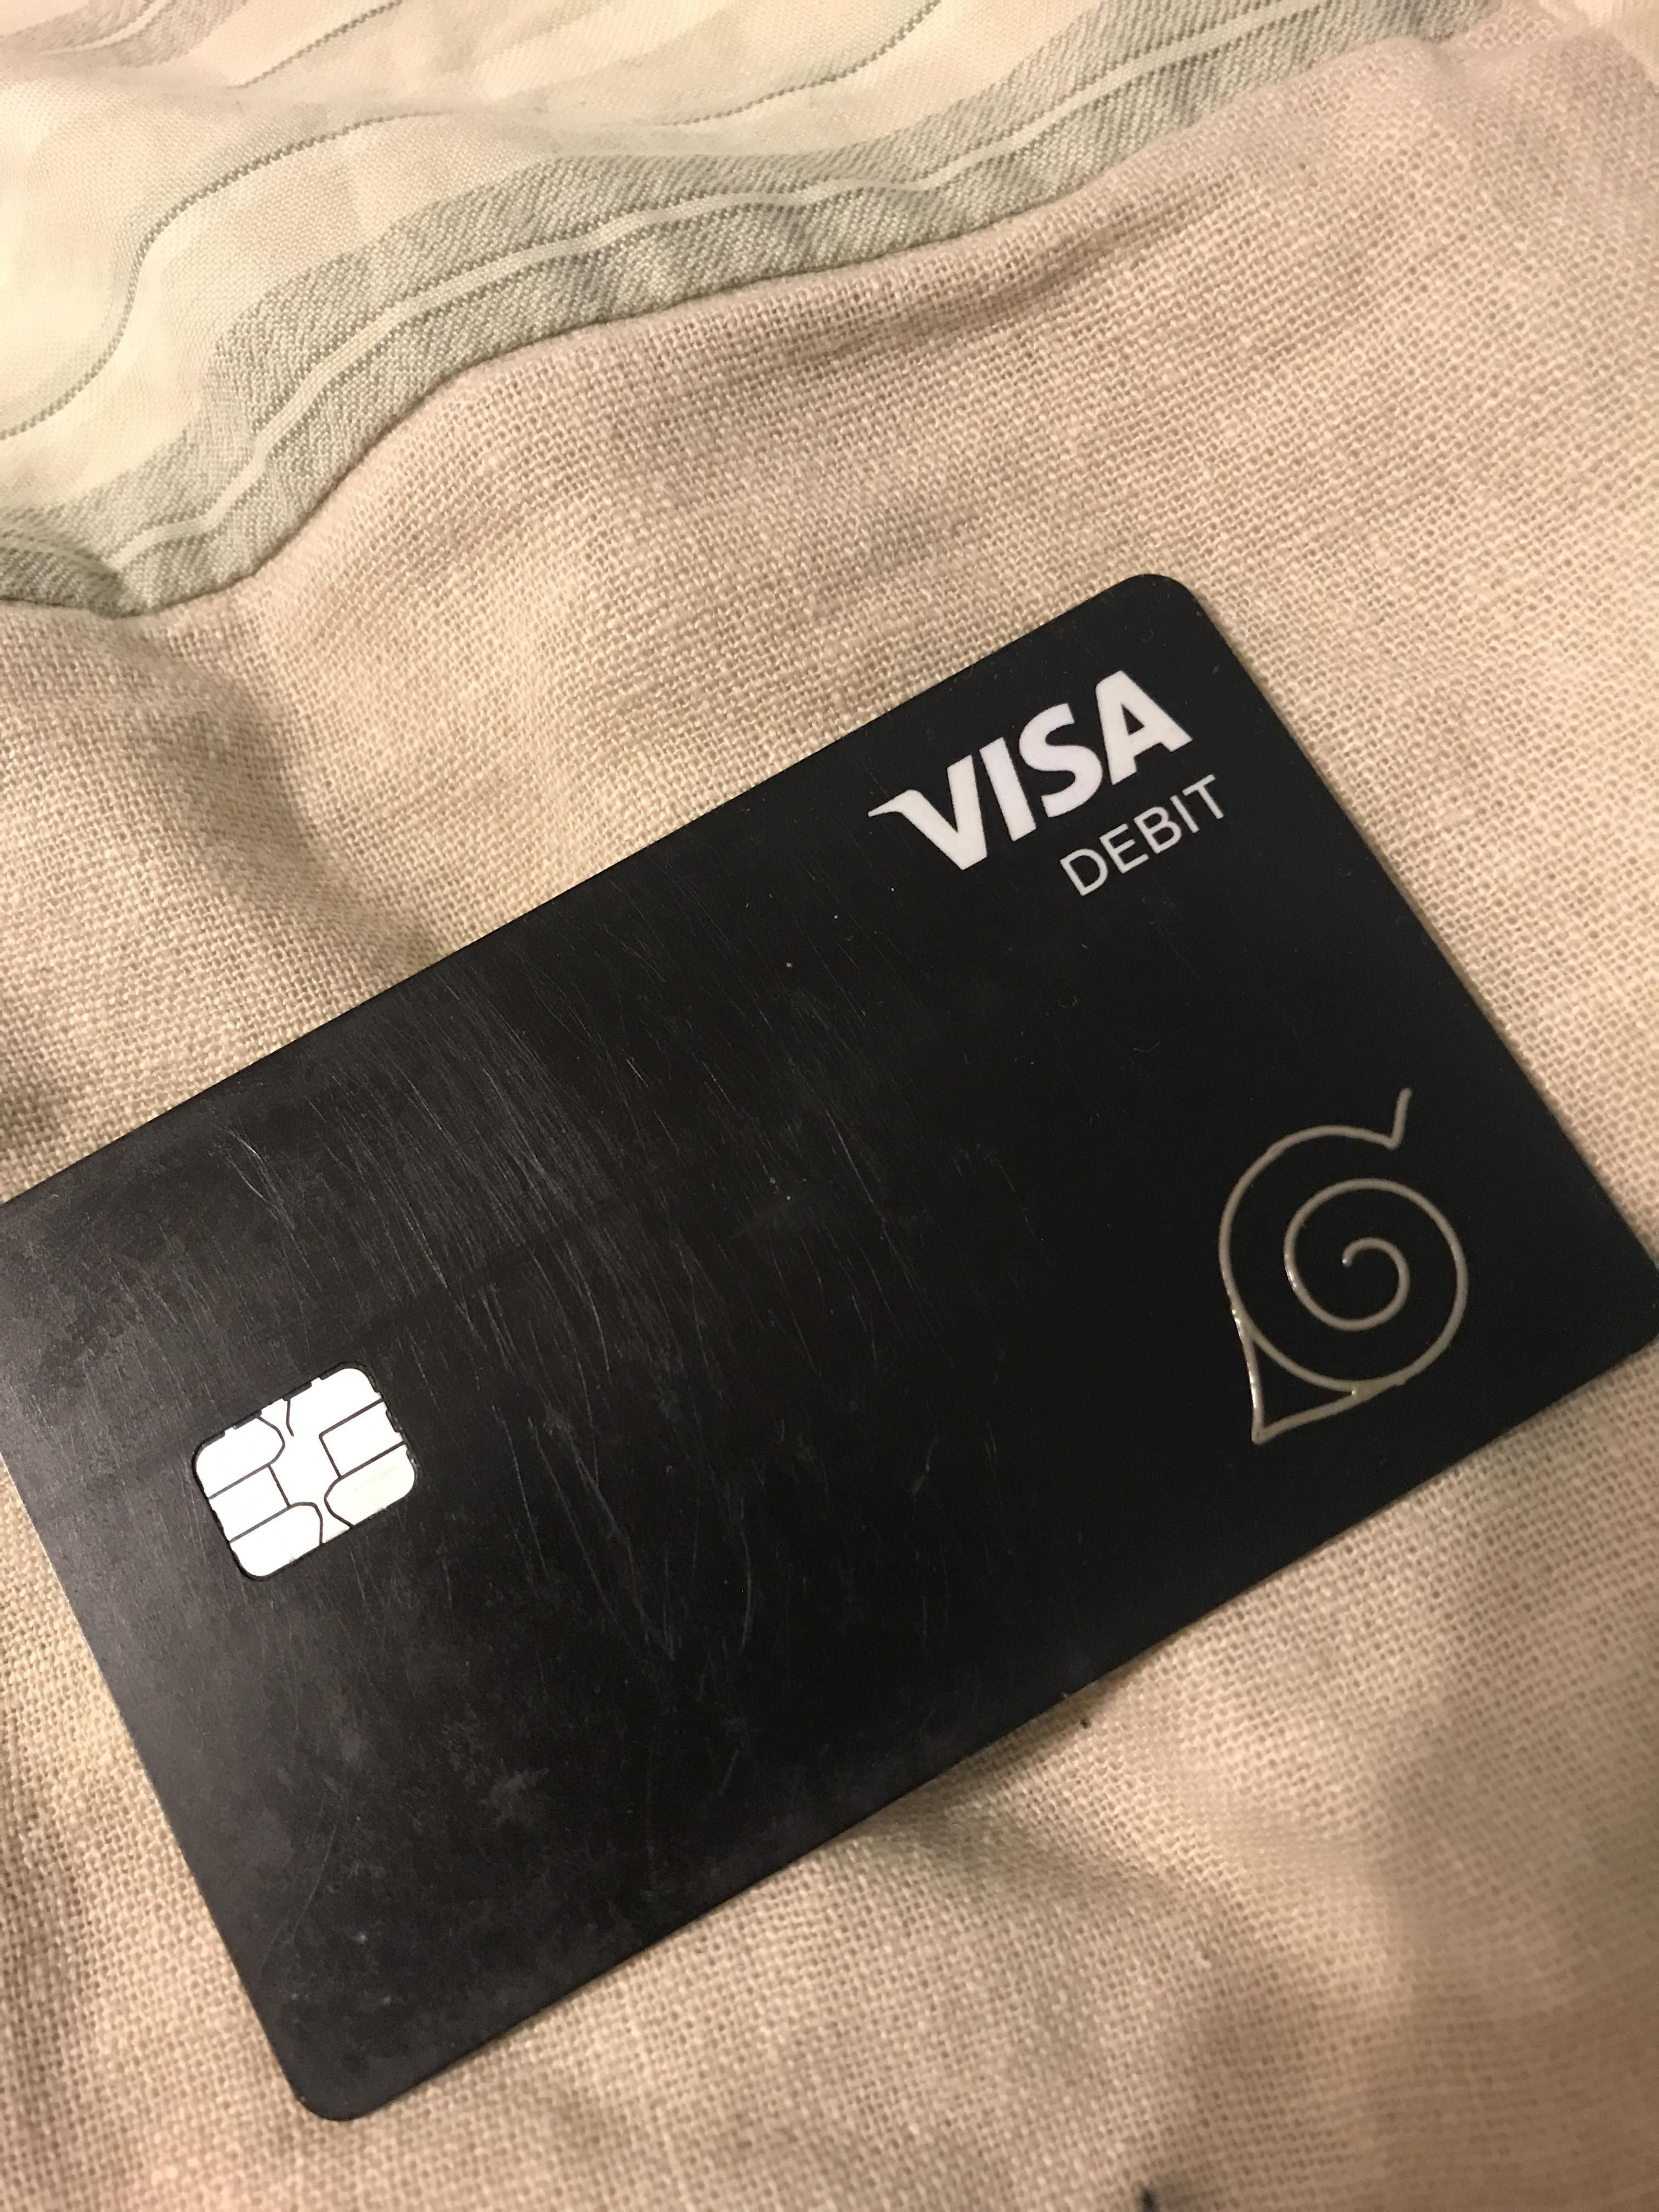 My cash app card from the hidden leaf village naruto